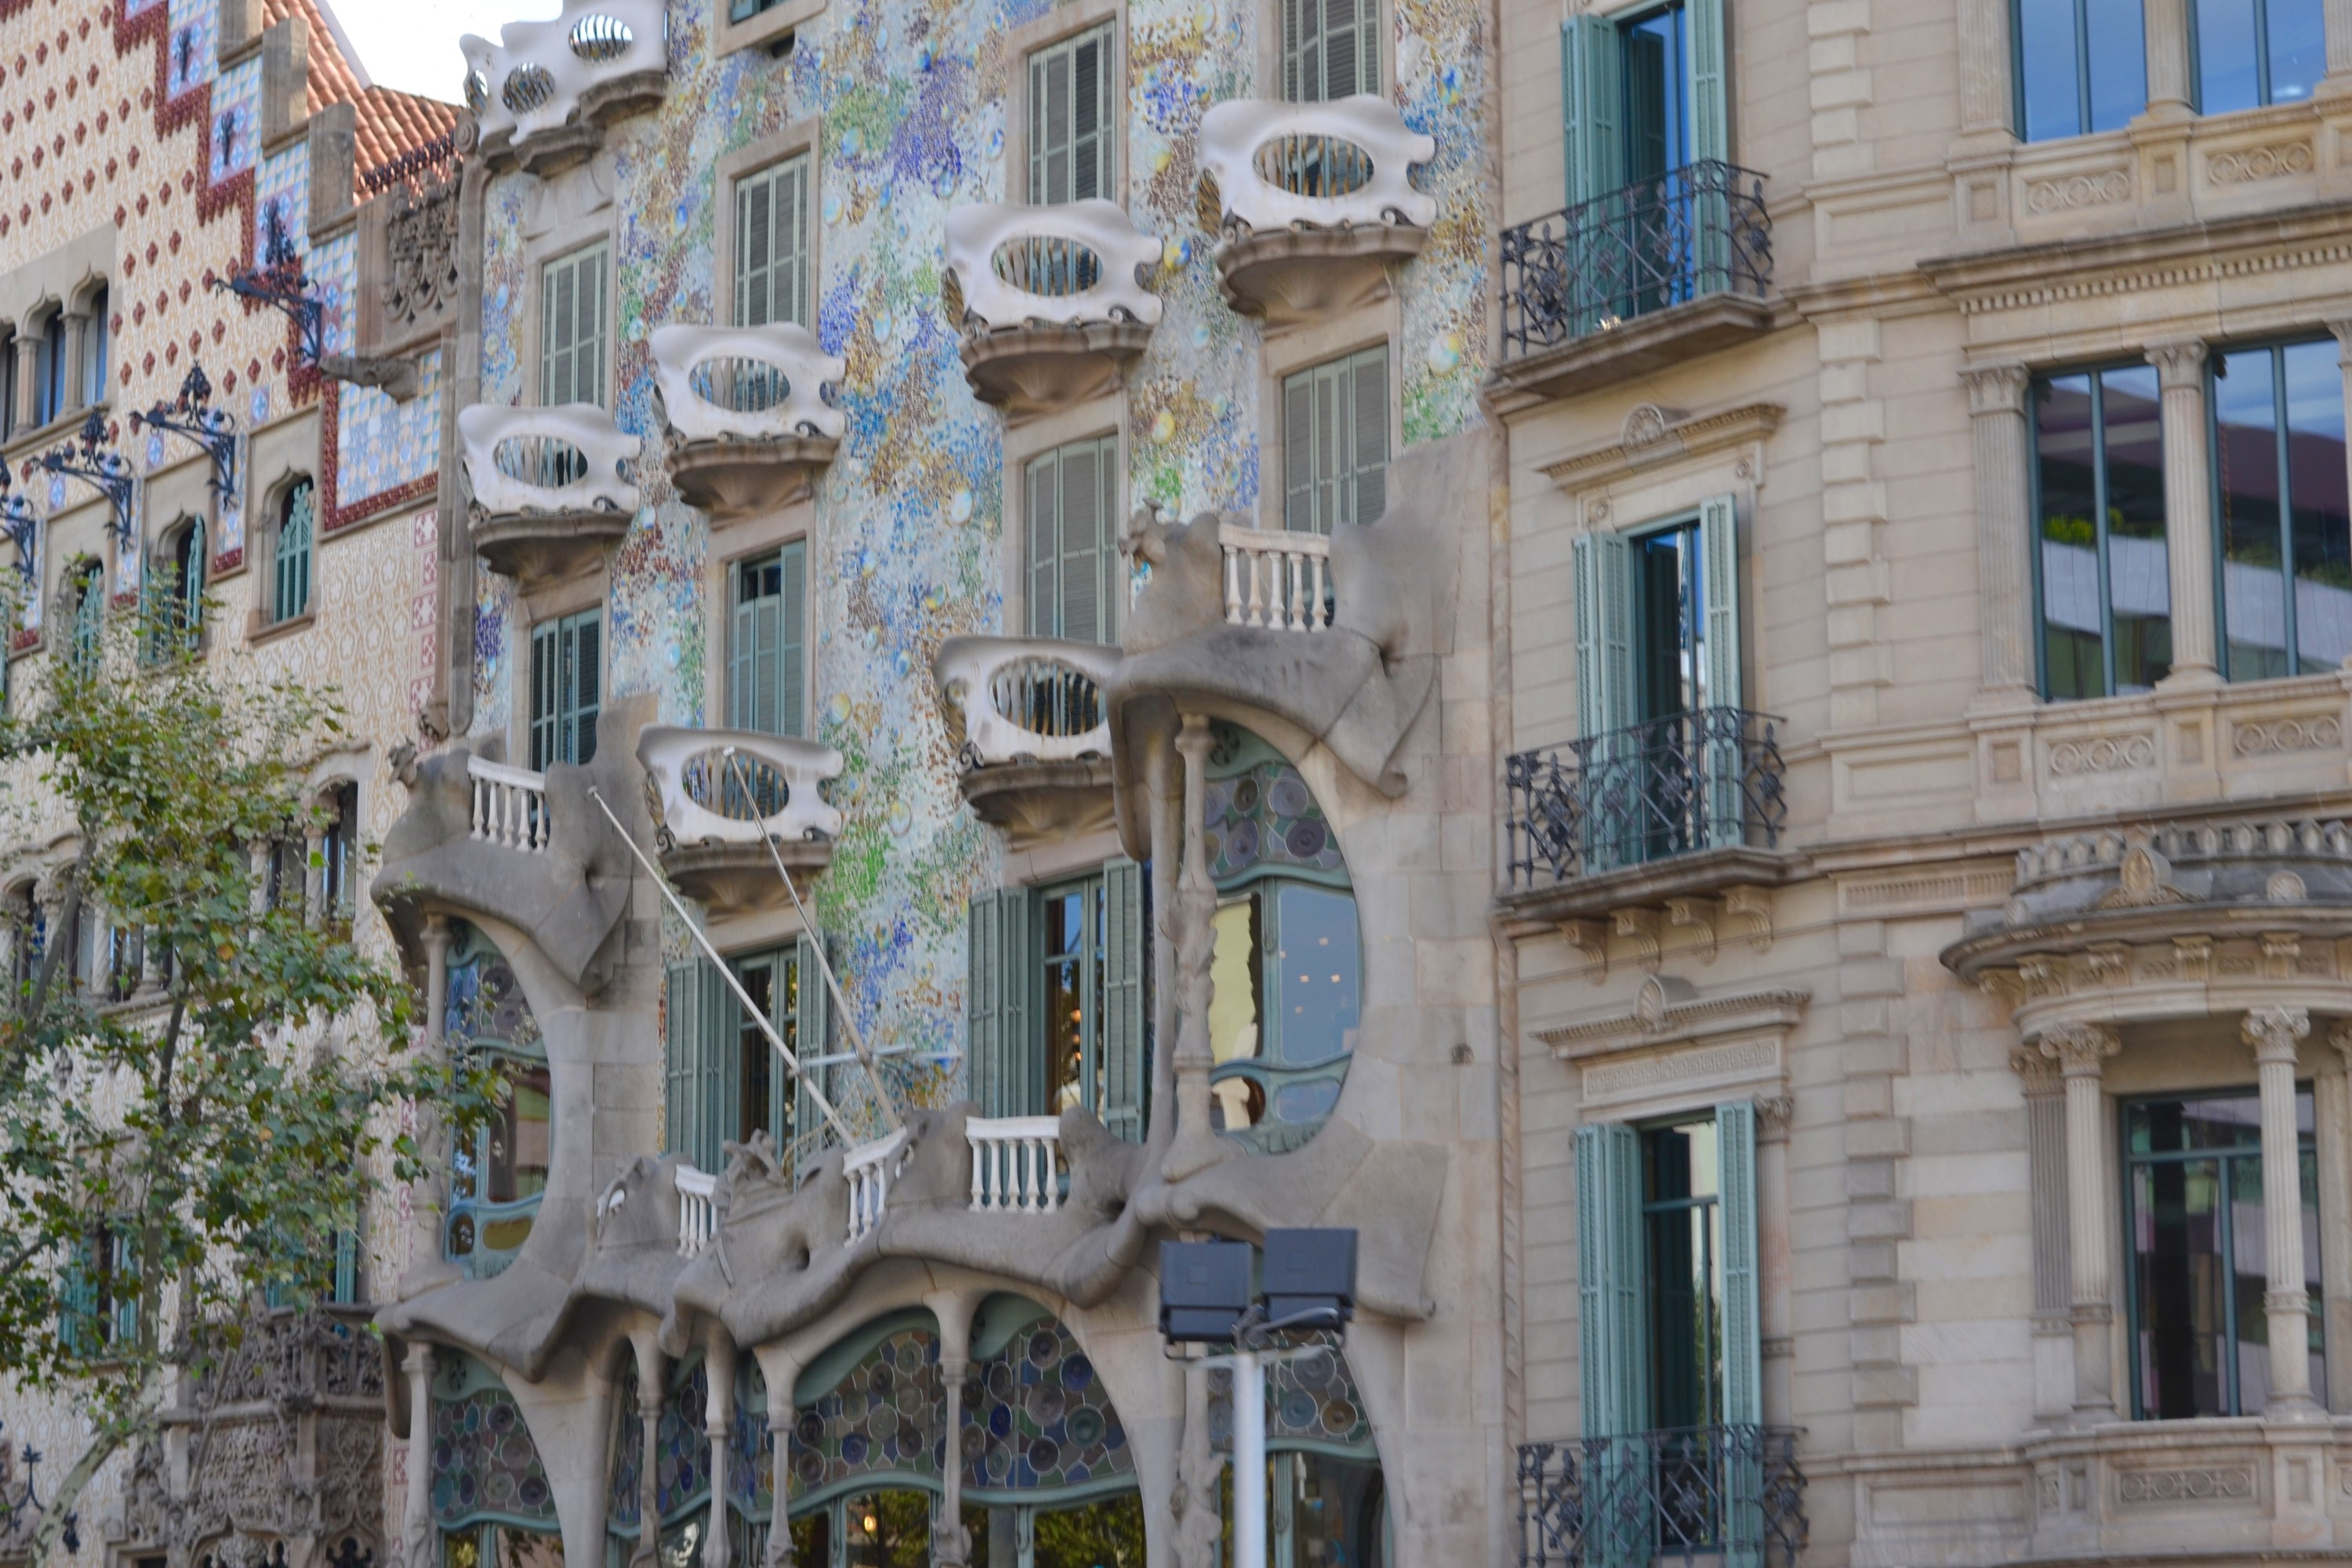 The famous Casa Batllo